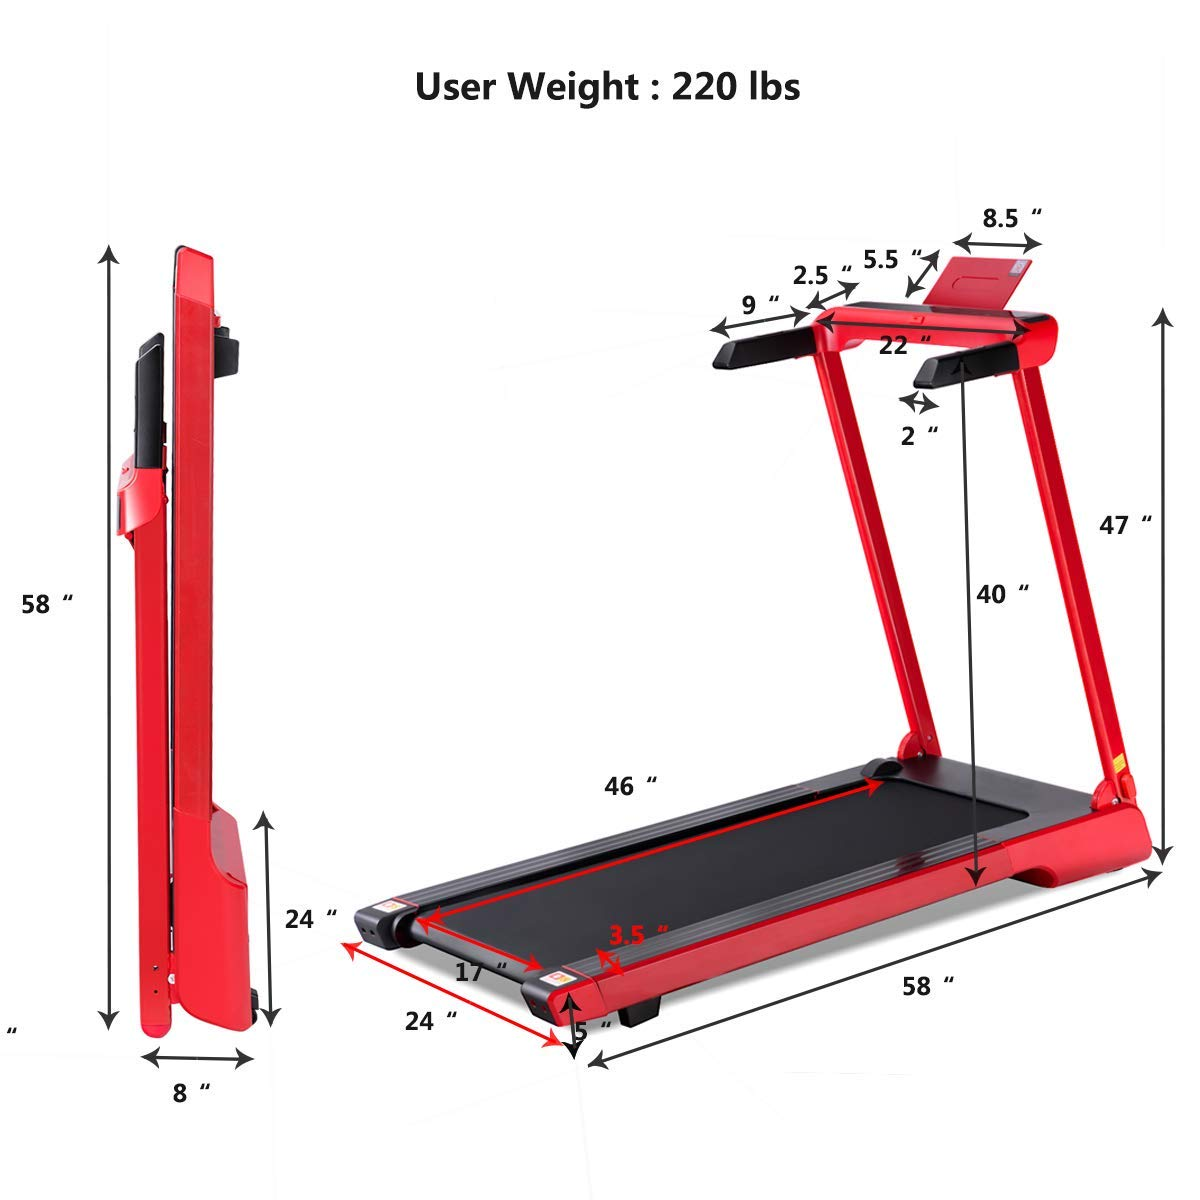 Goplus 2.25 HP Folding Treadmill Electric Cardio Fitness Jogging Running Machine Portable Motorized Power Slim Treadmill with Sports App and LED Display (Red) by Goplus (Image #7)